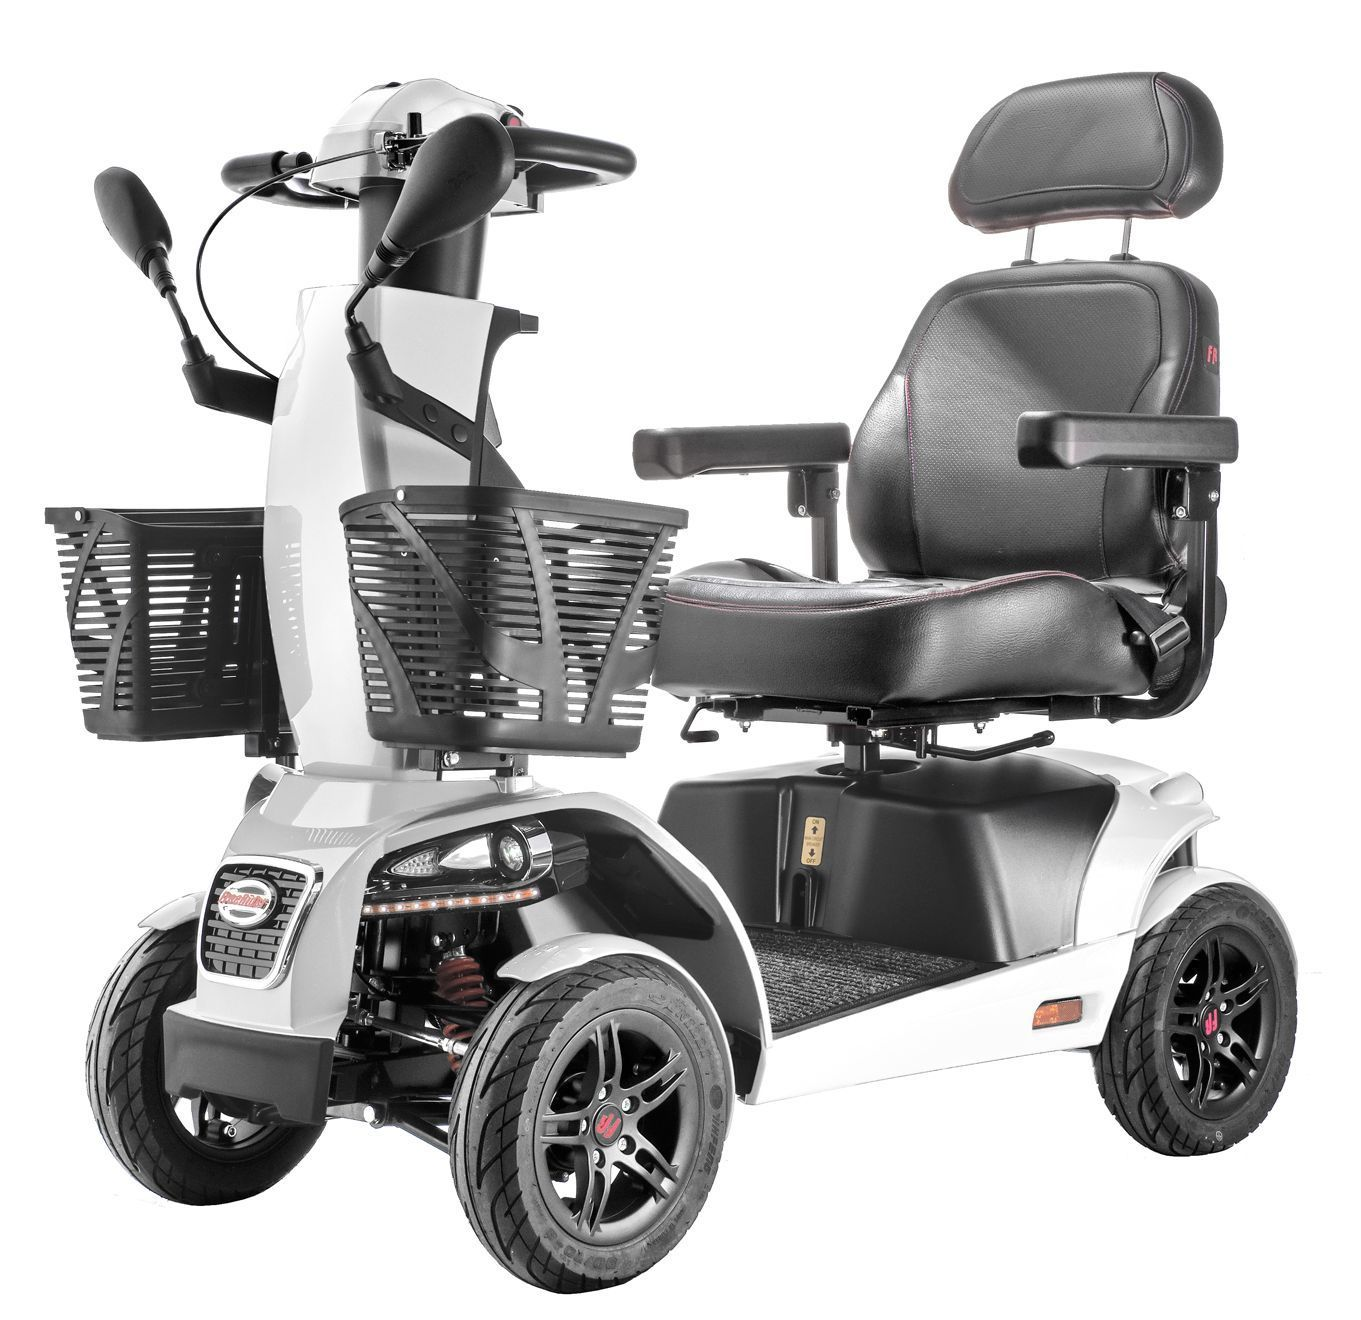 FR1 Rugged Large Mobility Scooter Freerider 4-Wheel w/ Suspension Speed 9.4 mph, White